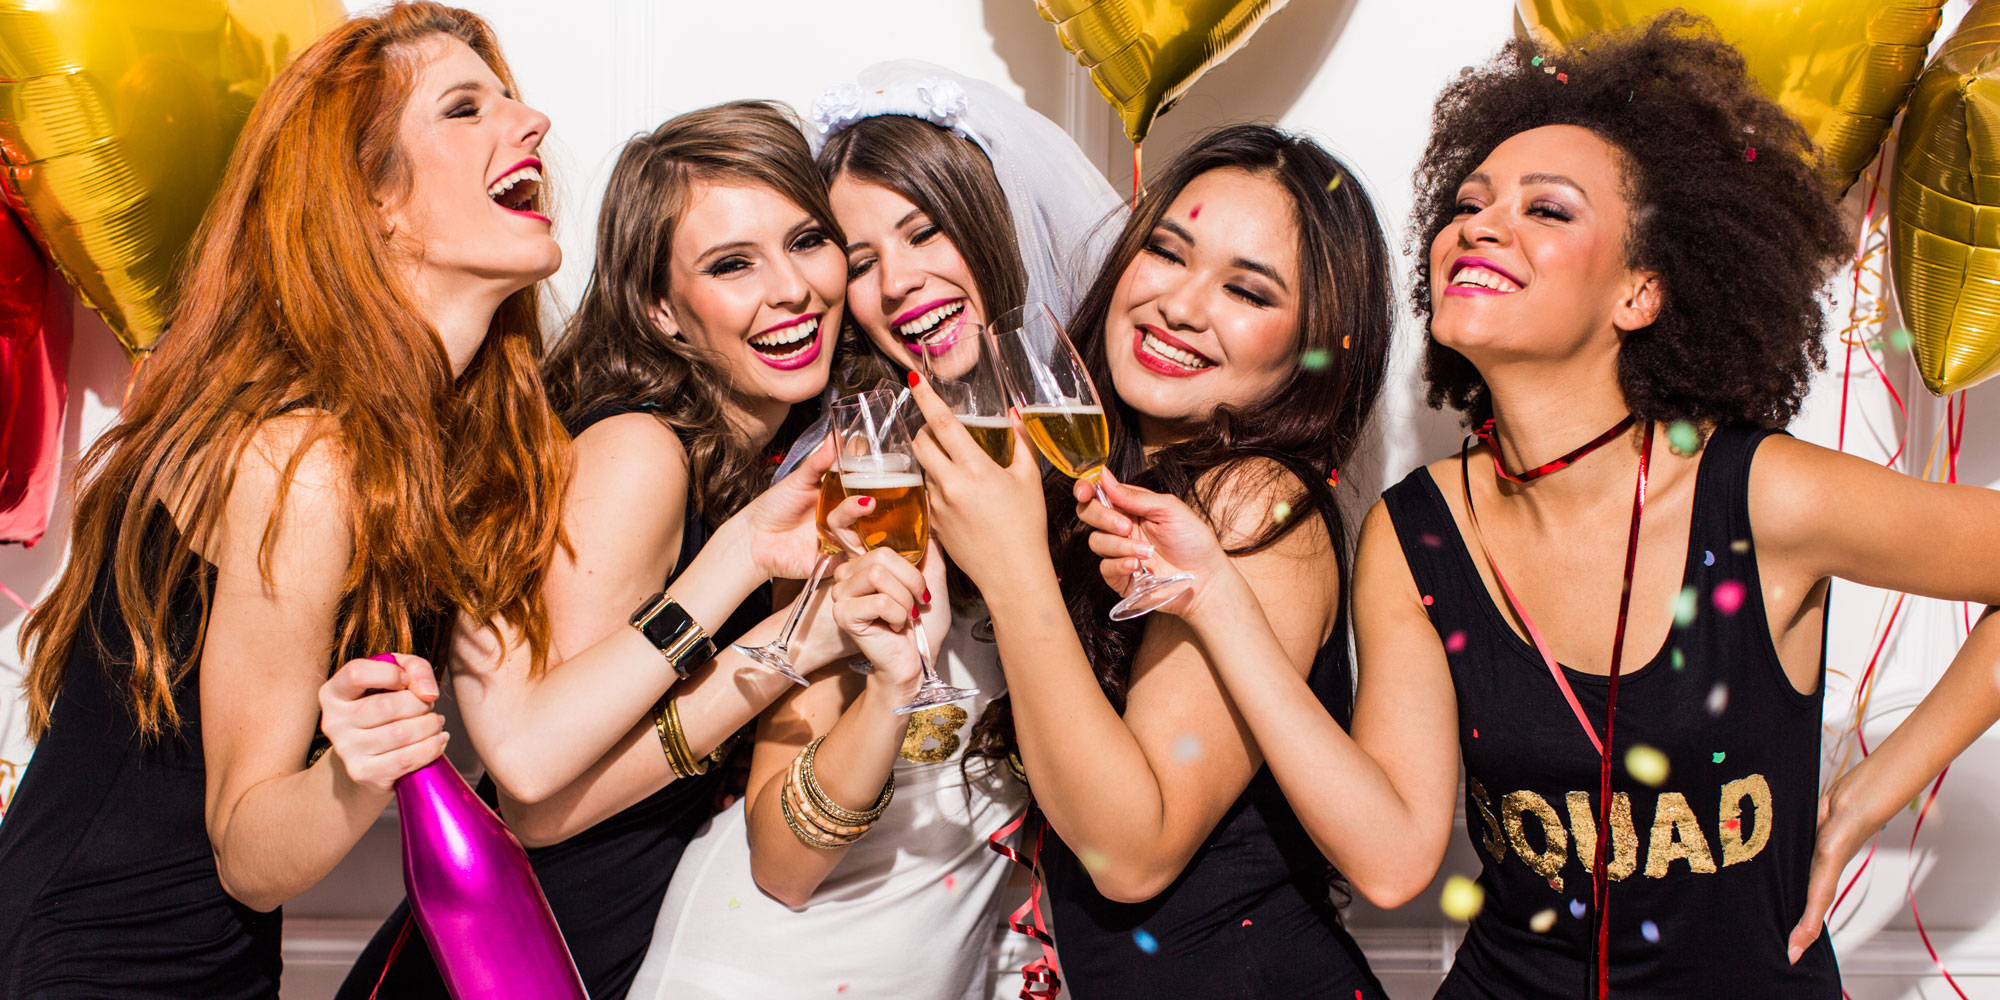 6 Bachelorette Party Games That Won't Cost You a Dime